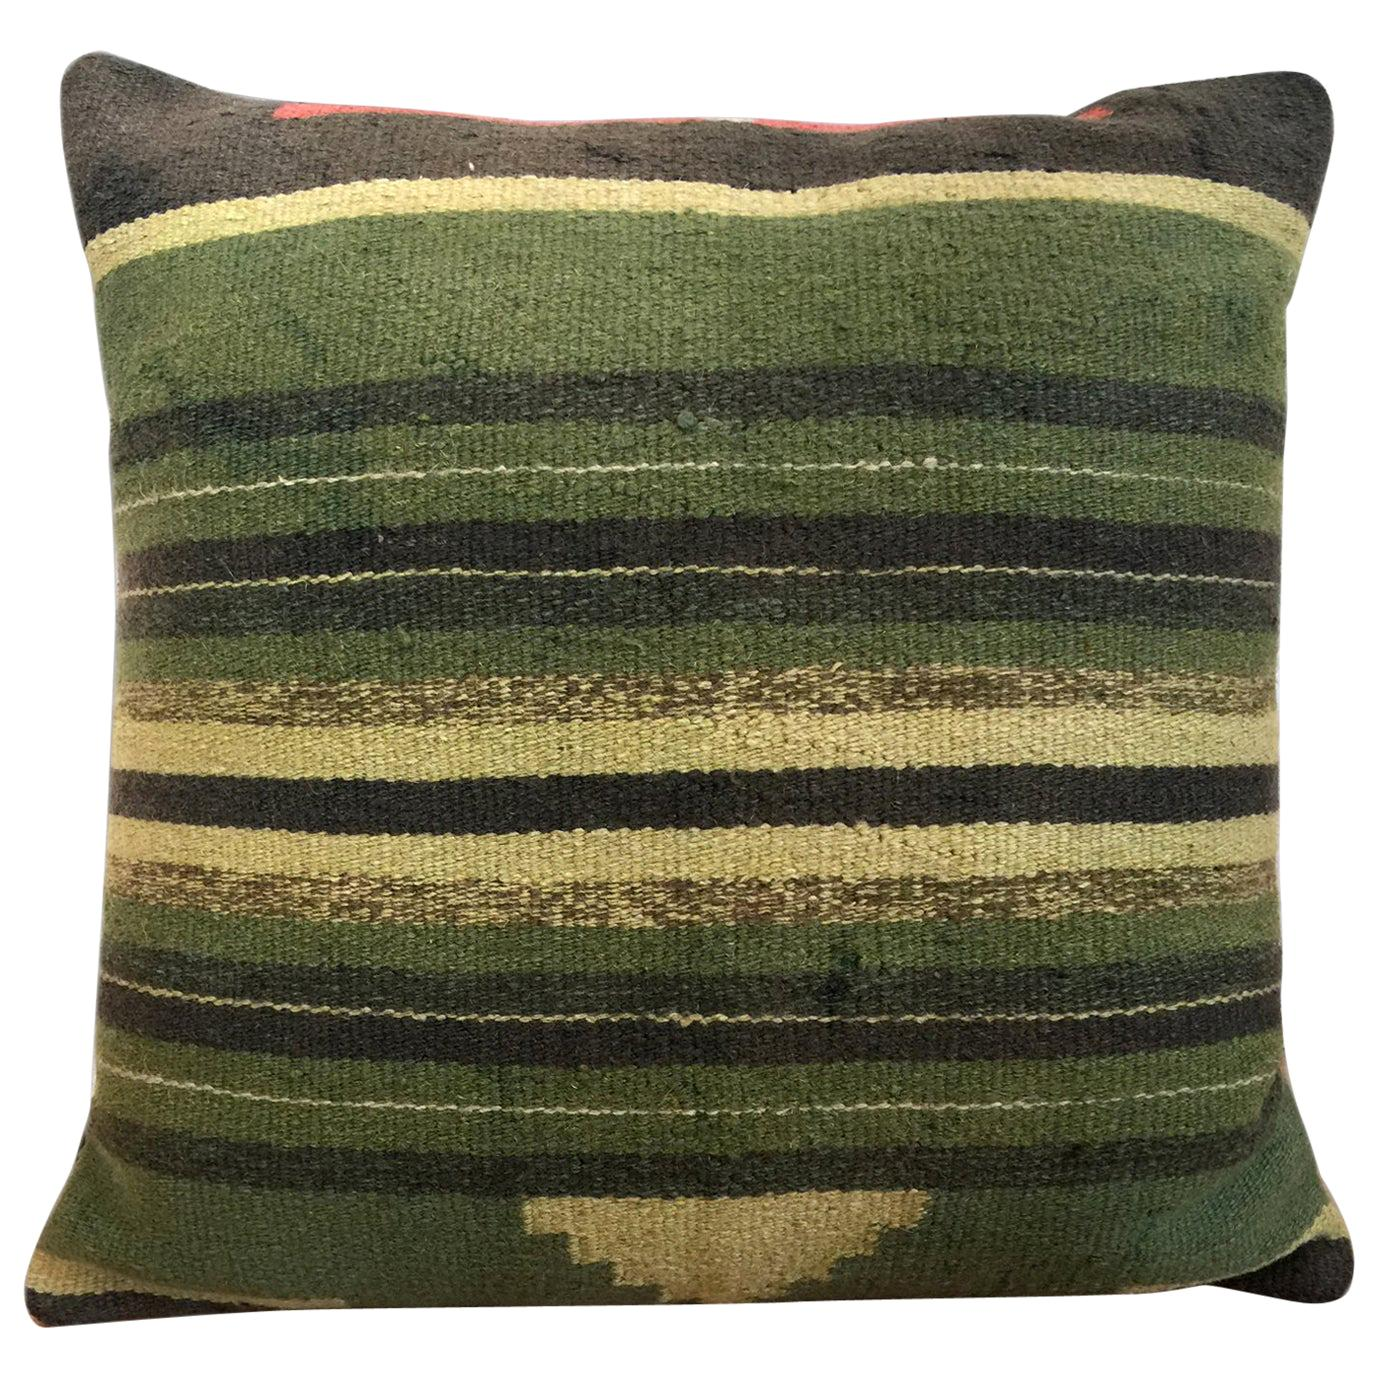 Green Decorative Pillows Handwoven Kilim Decorative Pillow Bench Cushion Cover